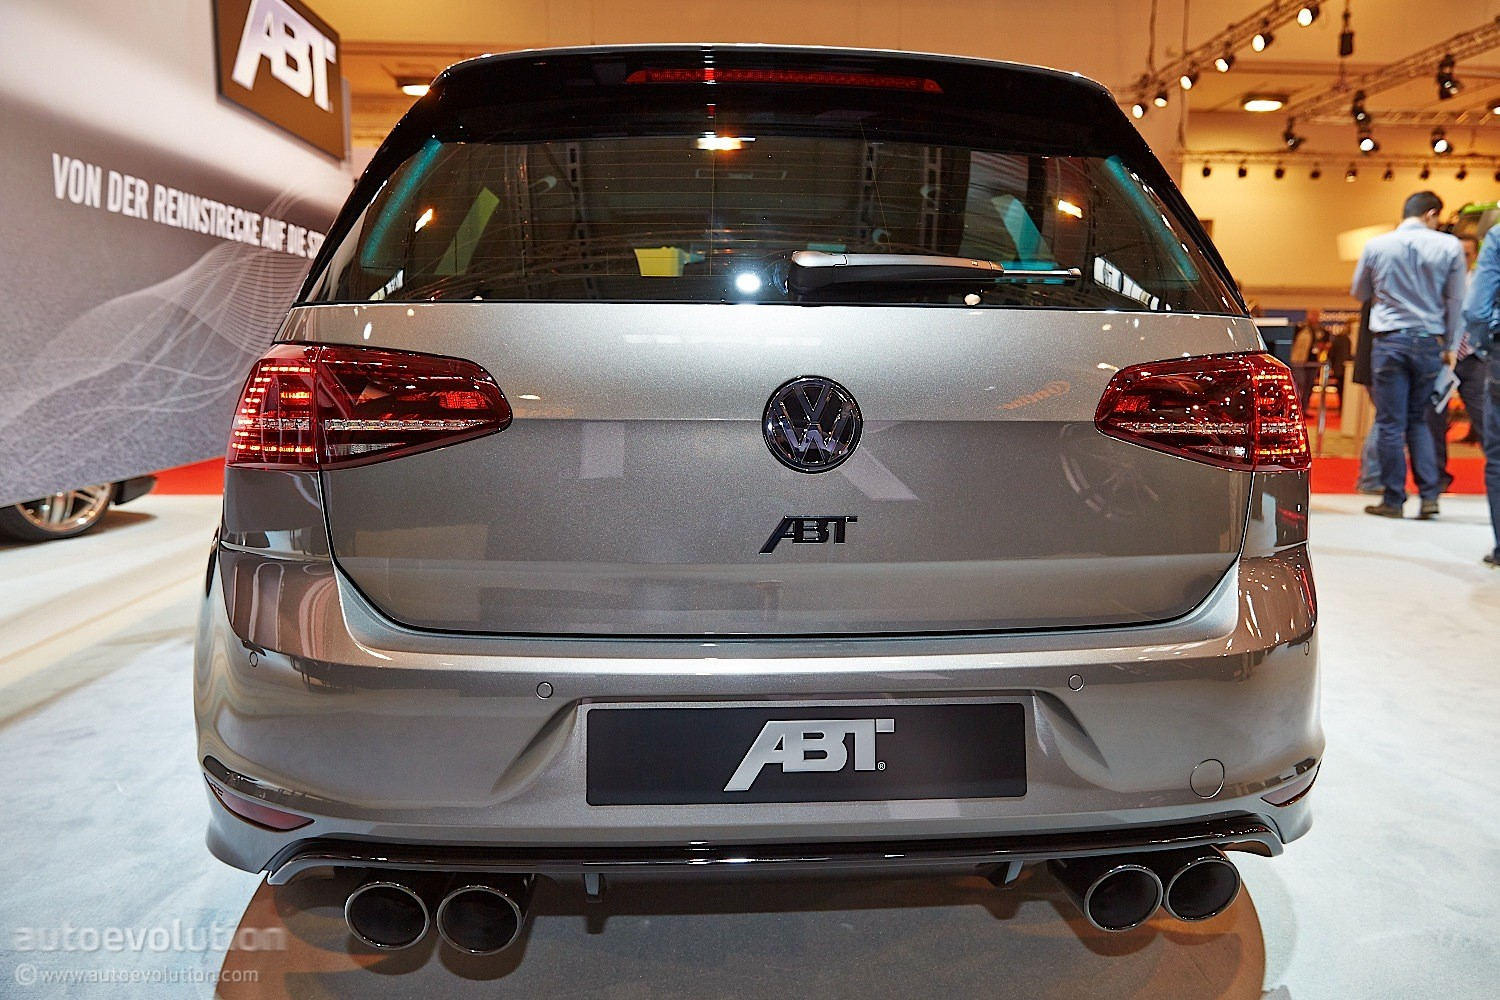 golf r goes mental with 400 hp tuning kit from abt in. Black Bedroom Furniture Sets. Home Design Ideas